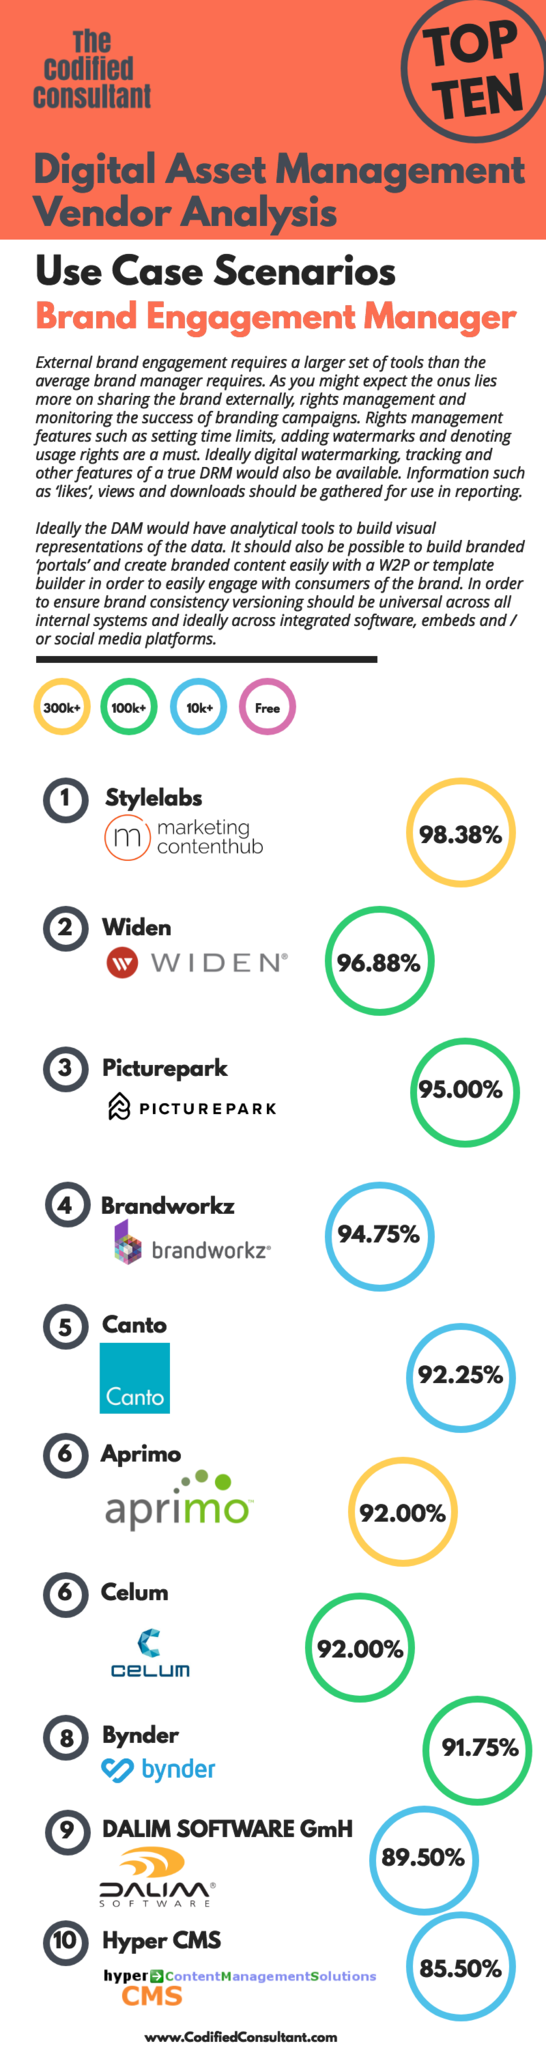 Top Ten by Use Case Scenario Brand Engagement Manager